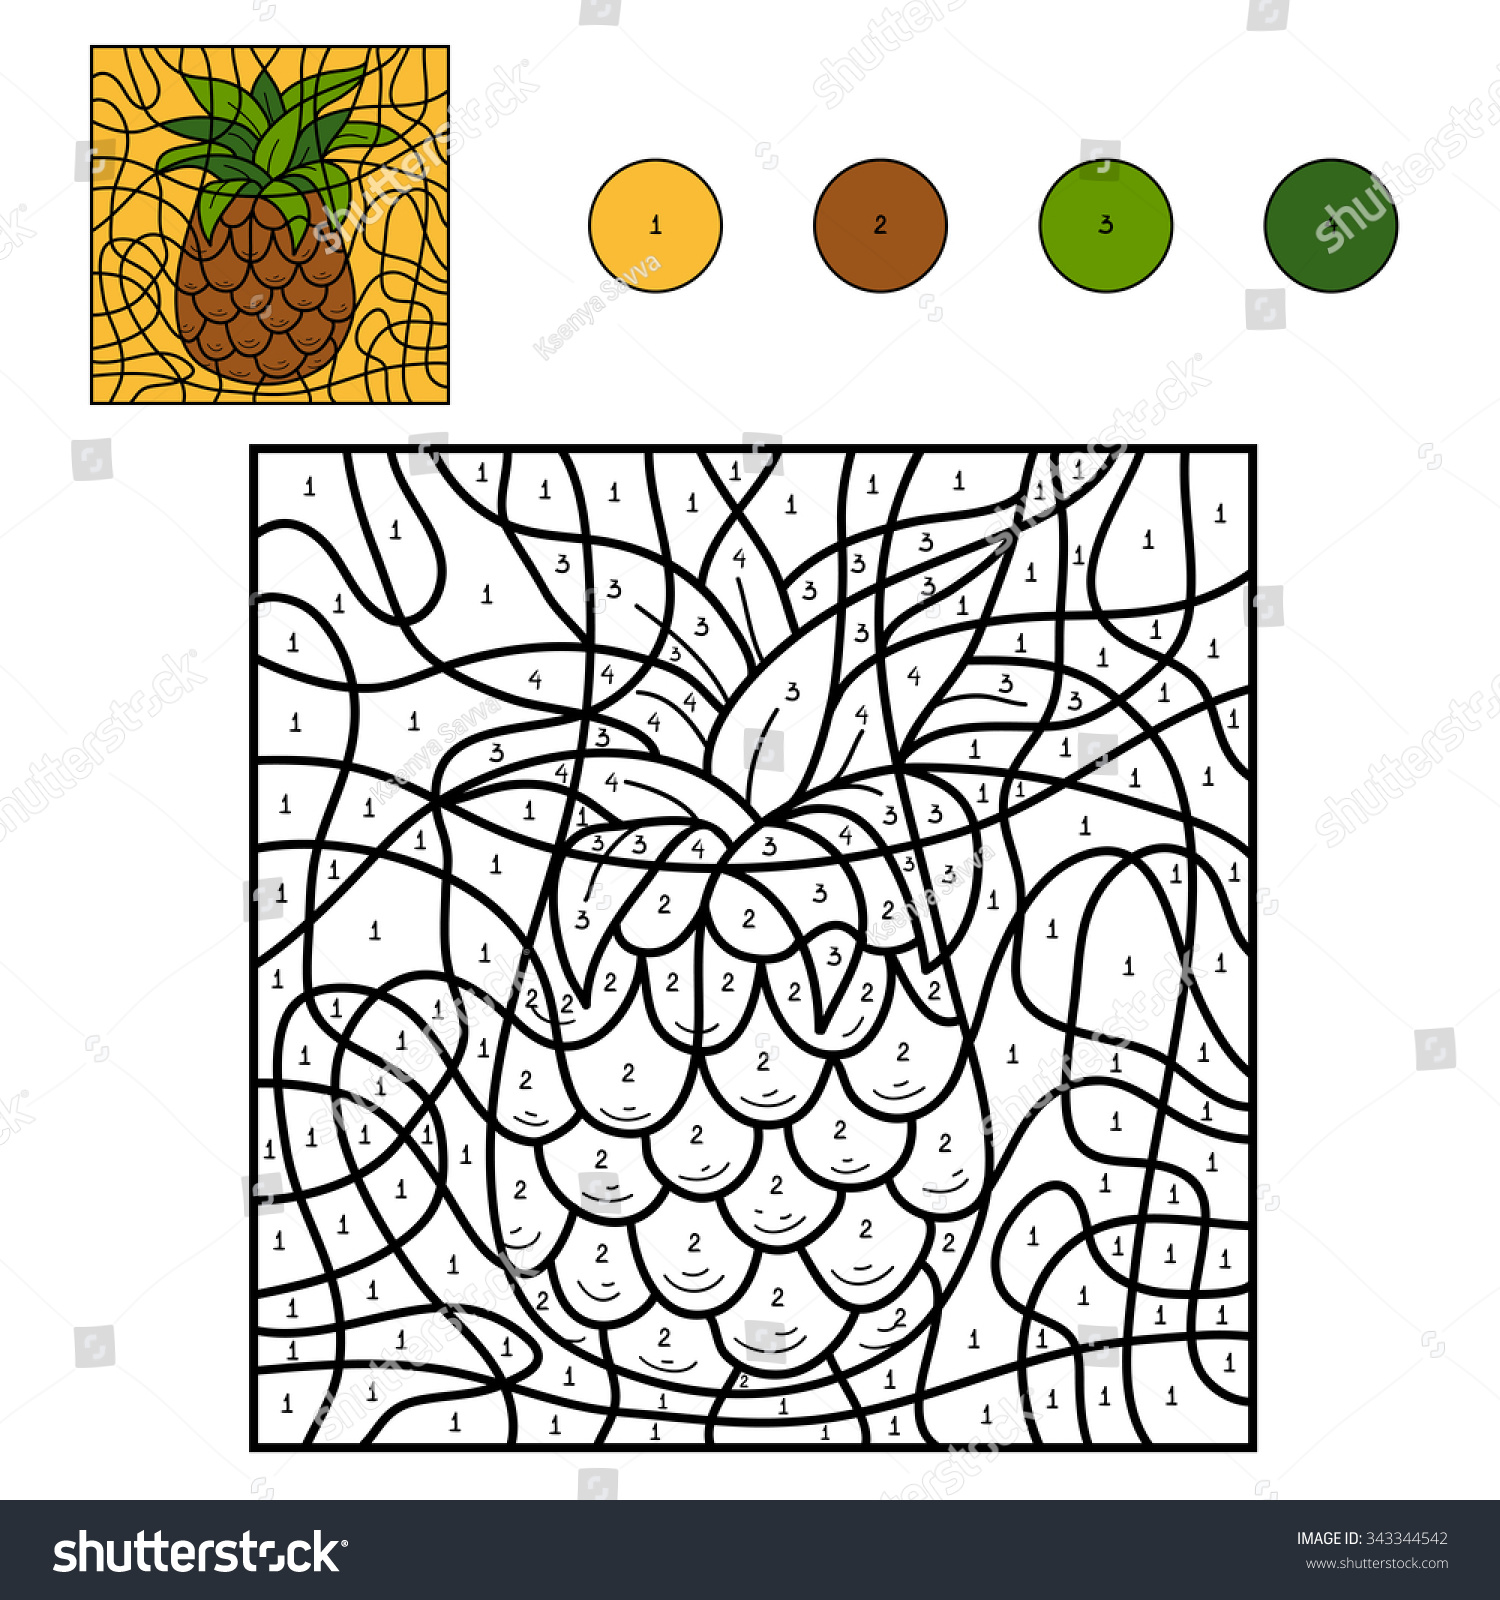 Game color by numbers - Color By Number Education Game For Children Fruits And Vegetables Pineapple